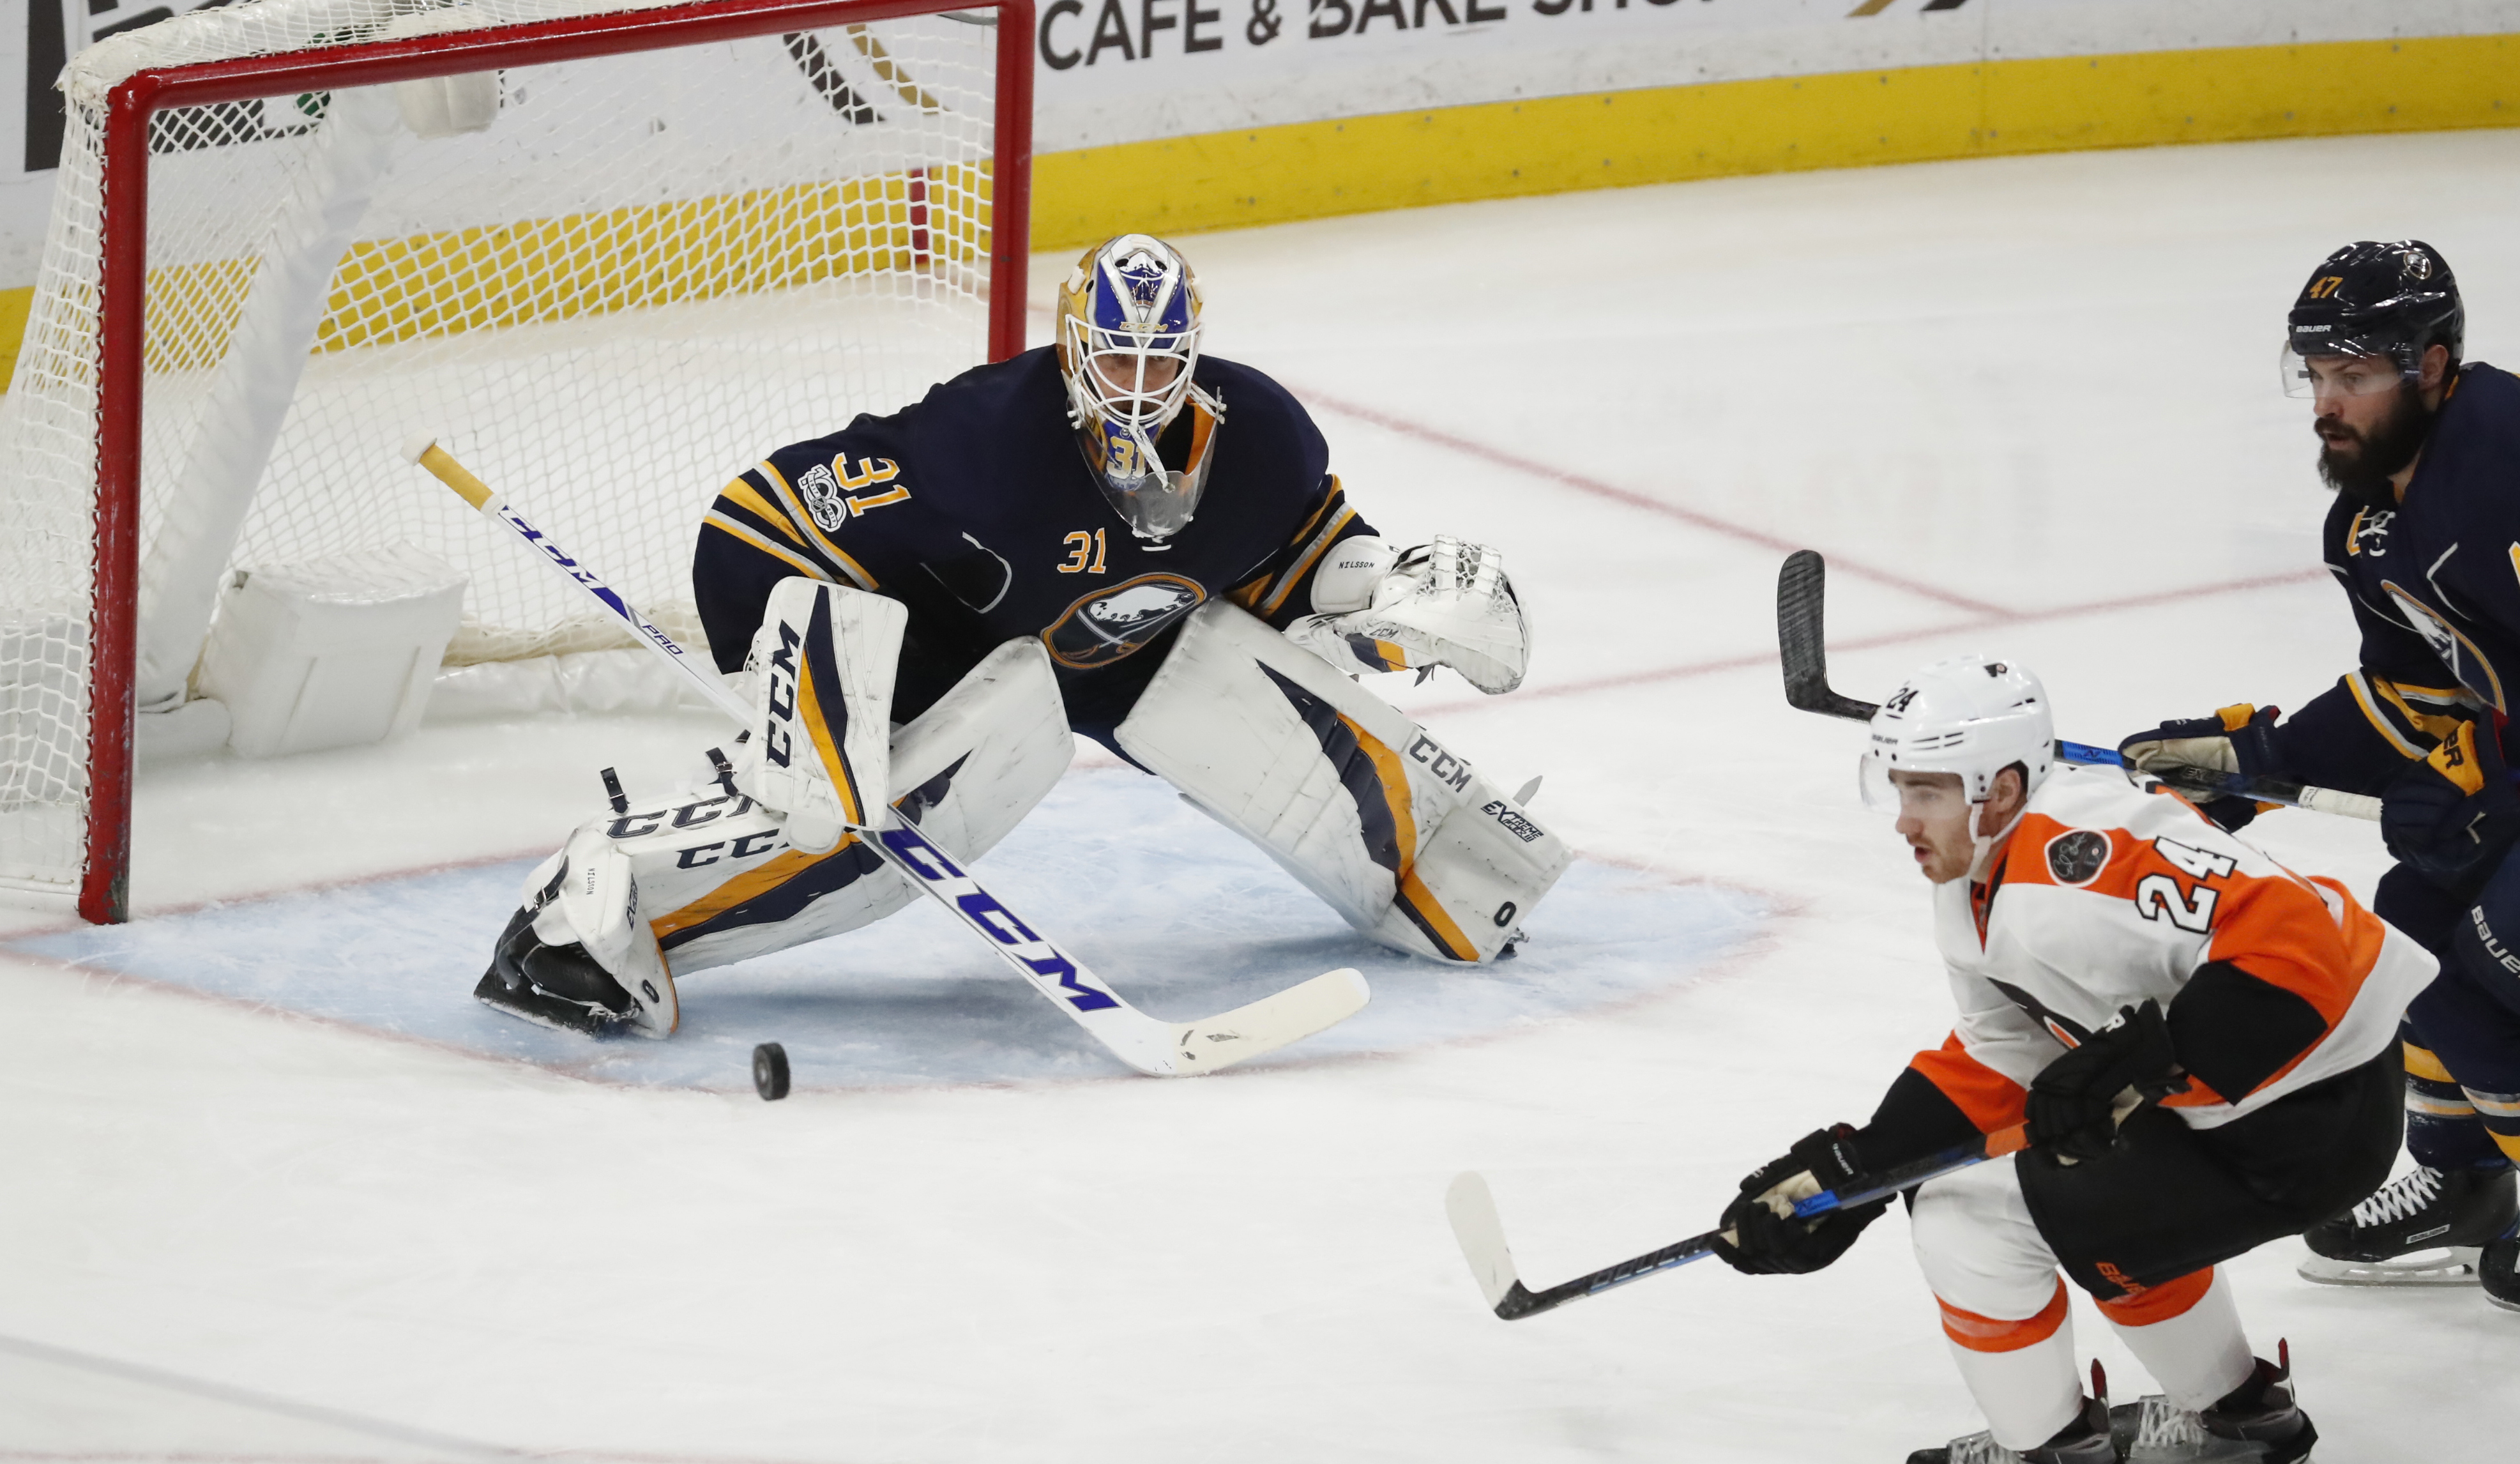 Anders Nilsson and the Sabres lost to the Carolina Hurricanes, 5-2, Friday in Raleigh, N.C. (Buffalo News file photo)